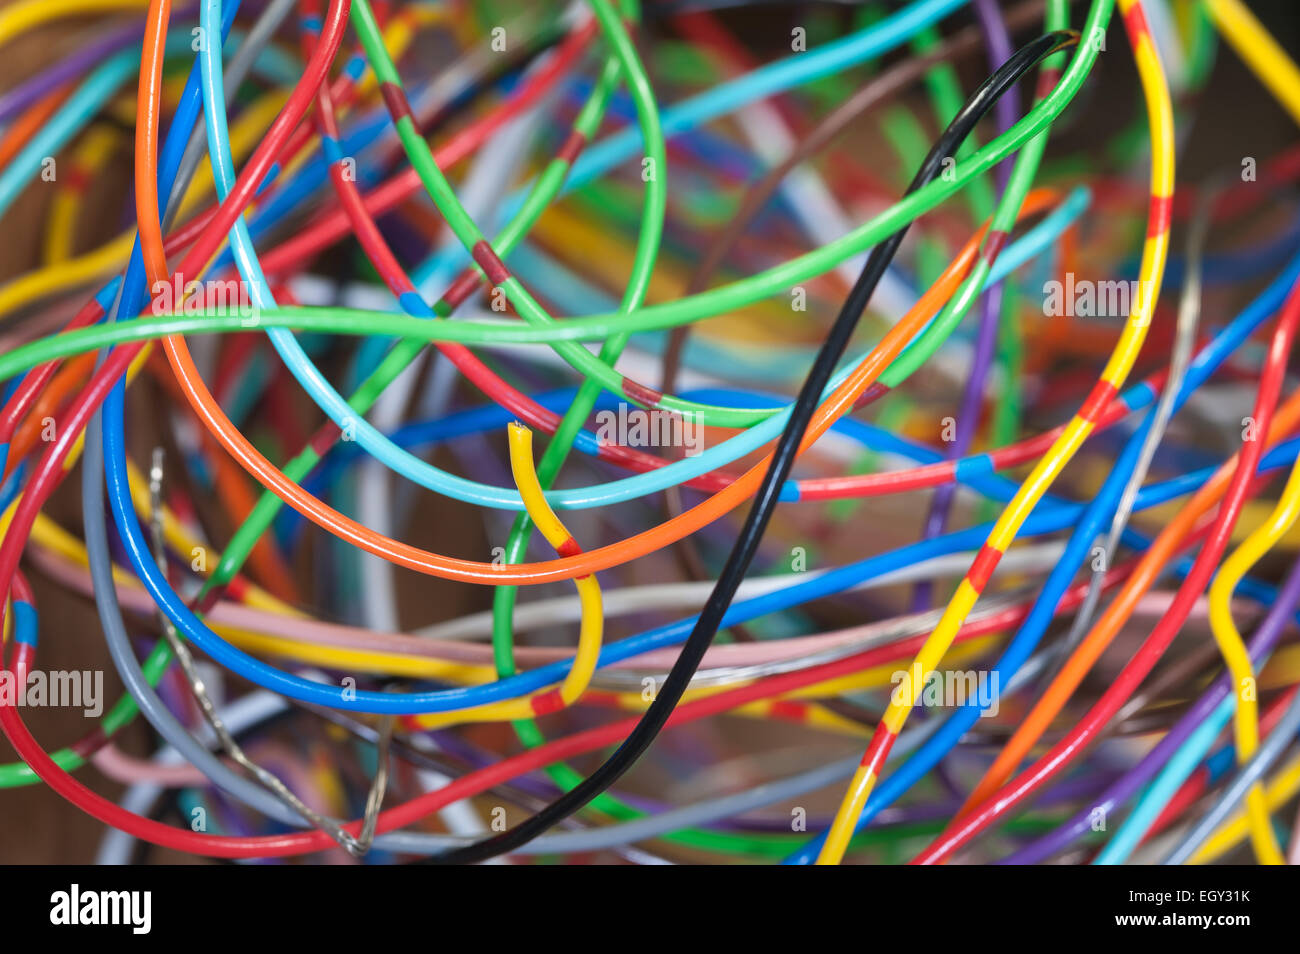 spaghetti junction mass of different colored network computer cables twisted and tangled to supply data - Stock Image